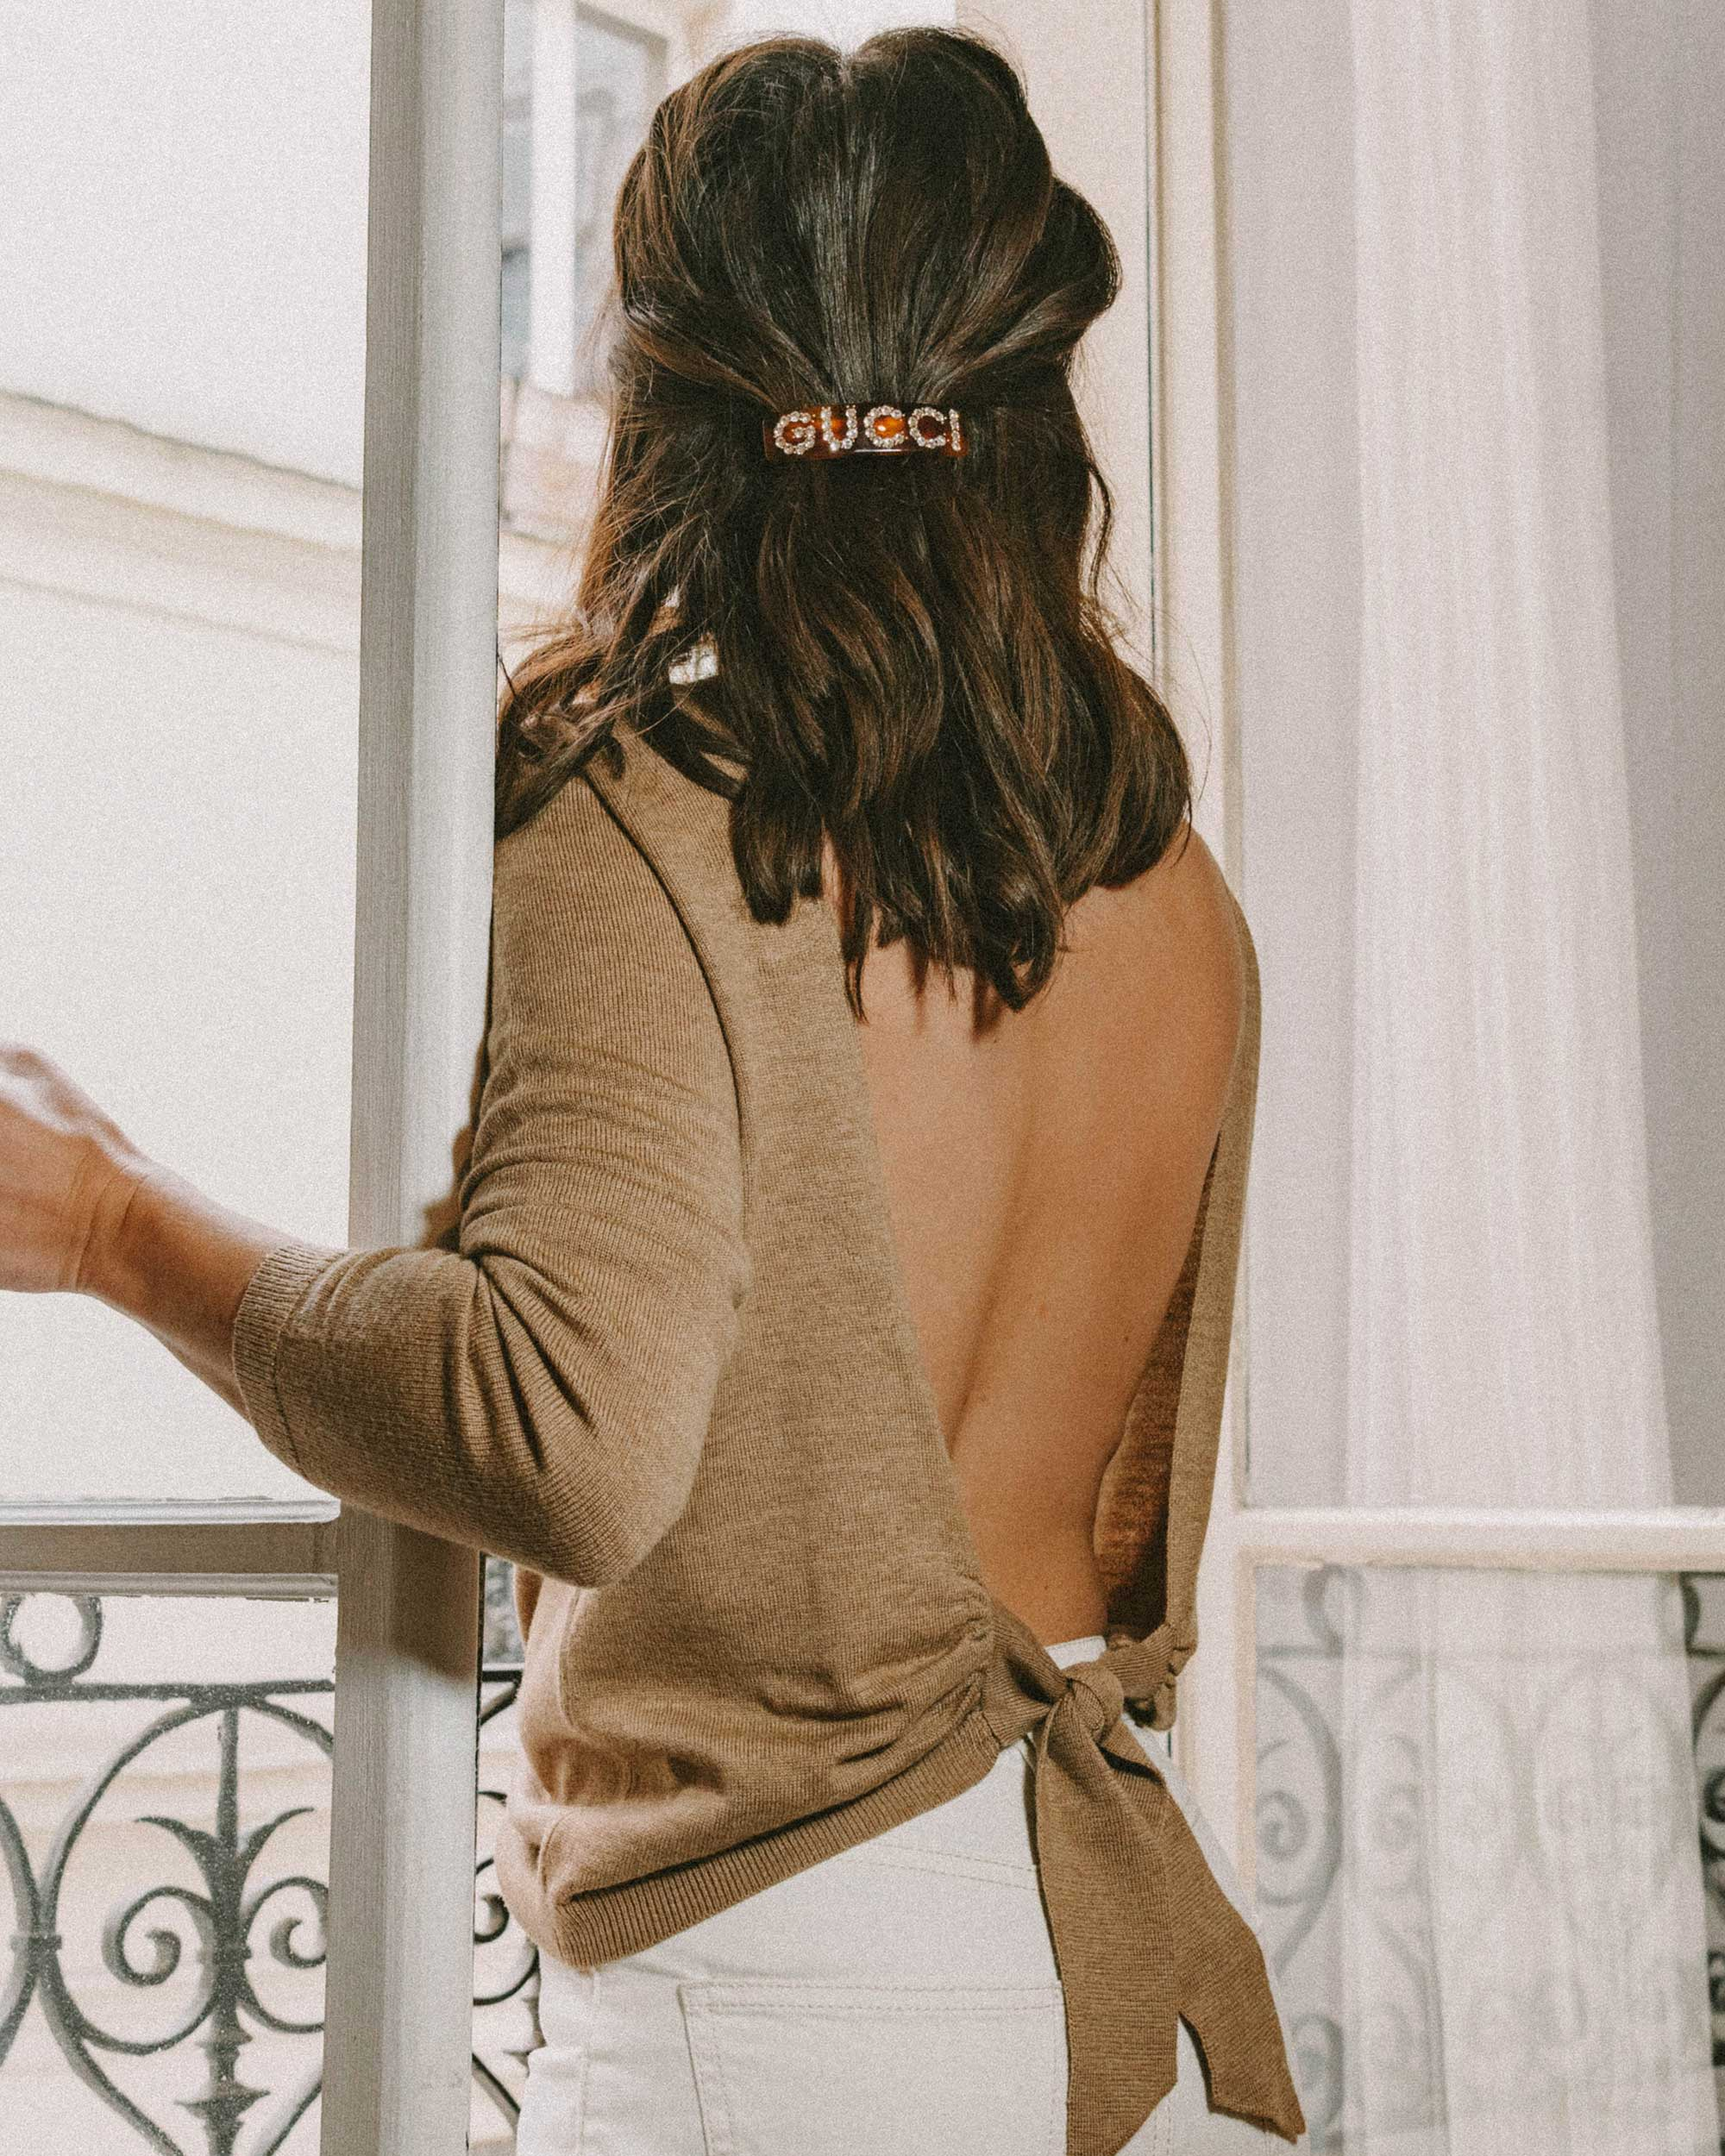 Mornings in Paris - Sezane backless sweater and crystal Gucci single hair barrette in Paris, France.